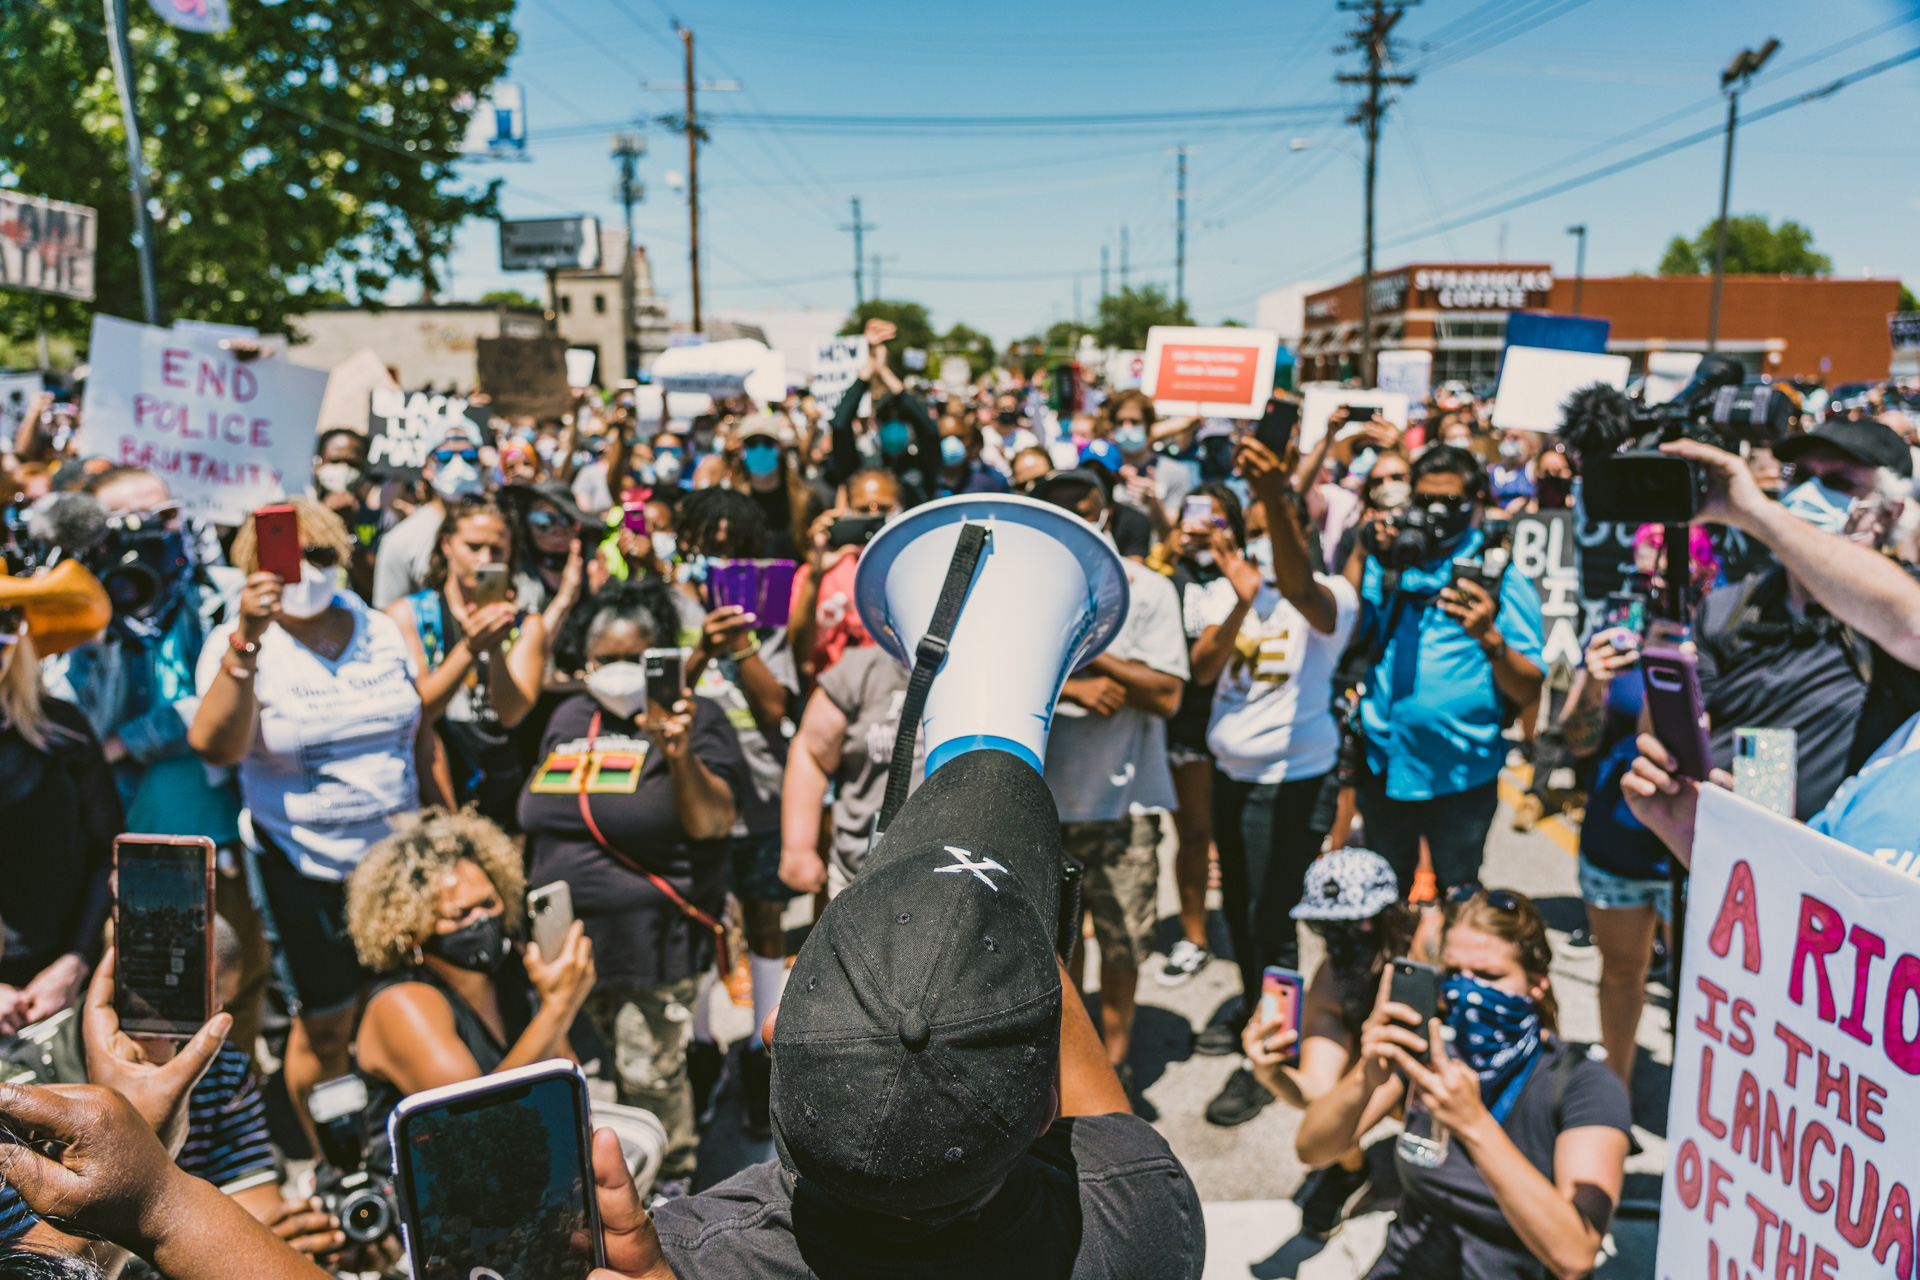 Tulsa activist Greg Robinson leads a protest in downtown Tulsa to protest racial in justice and police brutality in the wake of George Floyd's death.